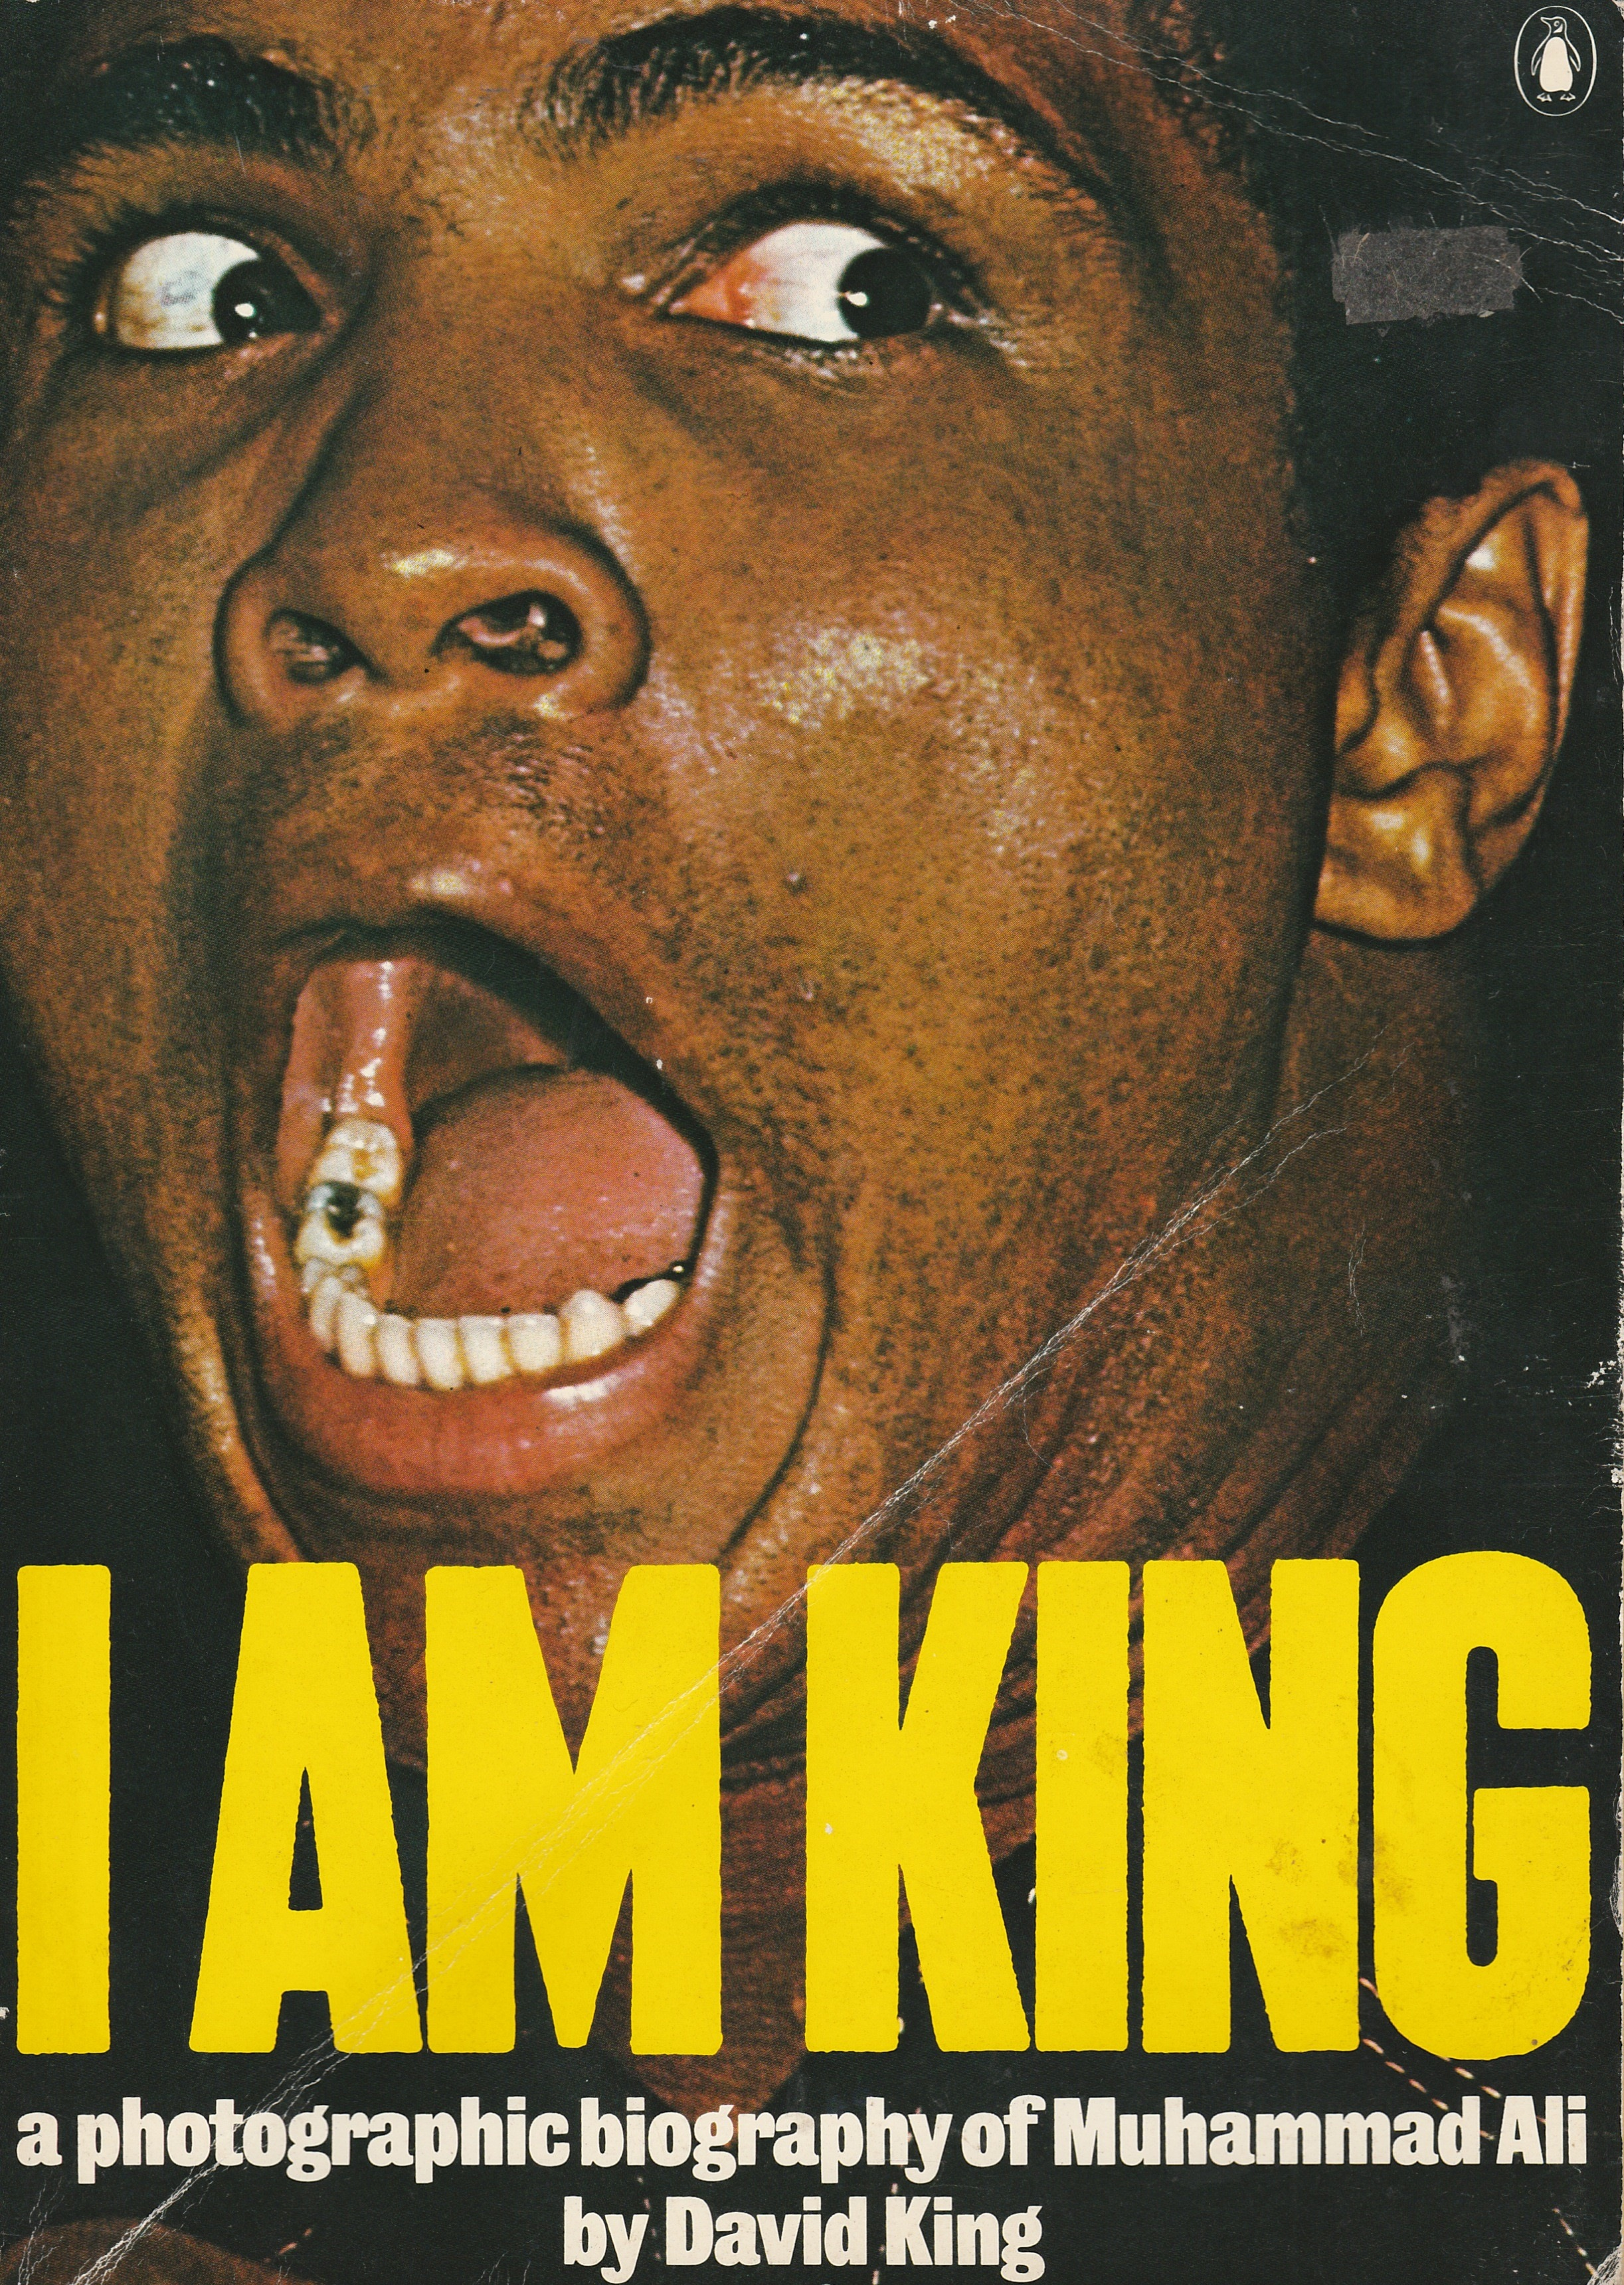 """""""King was born in 1943, and studied at the London School of Printing and Graphic Arts (now London College of Printing) under Robin Fior, who describes King's approach as 'compare and contrast as a political stance'. As art editor of  The Sunday Times Magazine  from 1965-75, he collaborated with art director Michael Rand to create the new language of the supplement: features sporting dynamic picture cropping and processed graphic effects gave the magazine a cinematic feel. King forged important friendships with other  Sunday Times  contributors. With Francis Wyndham he compiled the first pictorial biography of Leon Trotsky (1972). King began supplying his own pictures to the  Sunday Times  , and an assignment with Muhammad Ali in 1974 resulted in the book  I am King  .""""   Christopher Wilson,  First published in   Eye   no. 48 vol. 12, 2003"""